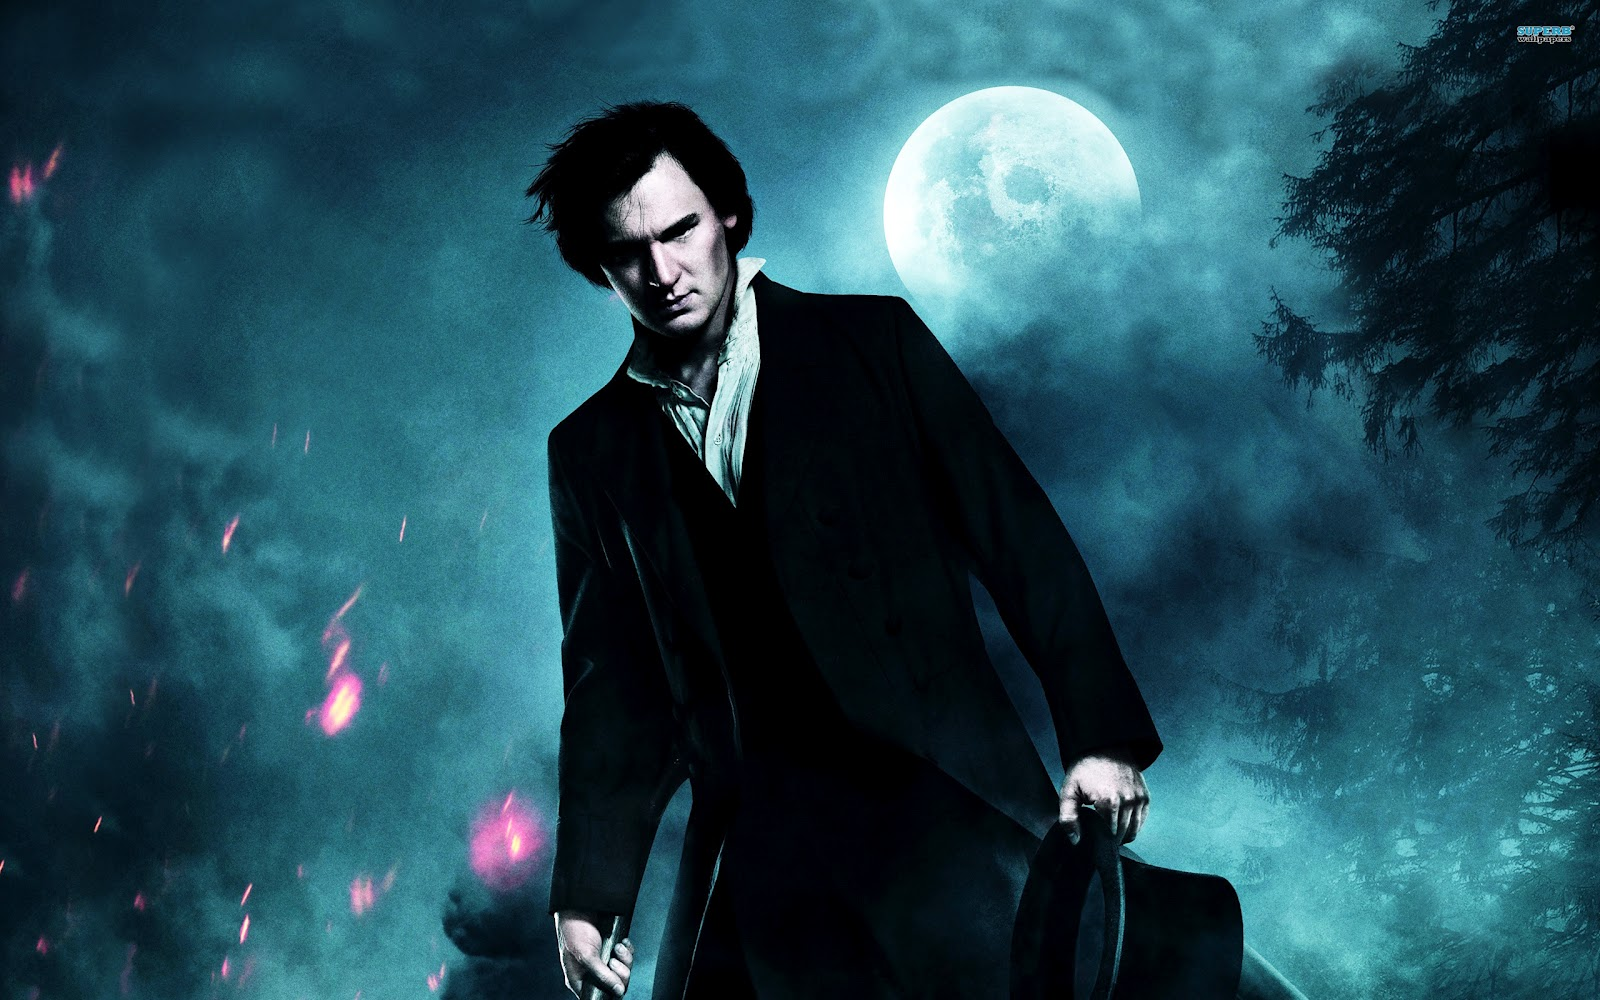 Wallpapers HD Abraham Lincoln   Vampire Hunter Wallpapers de la 1600x1000